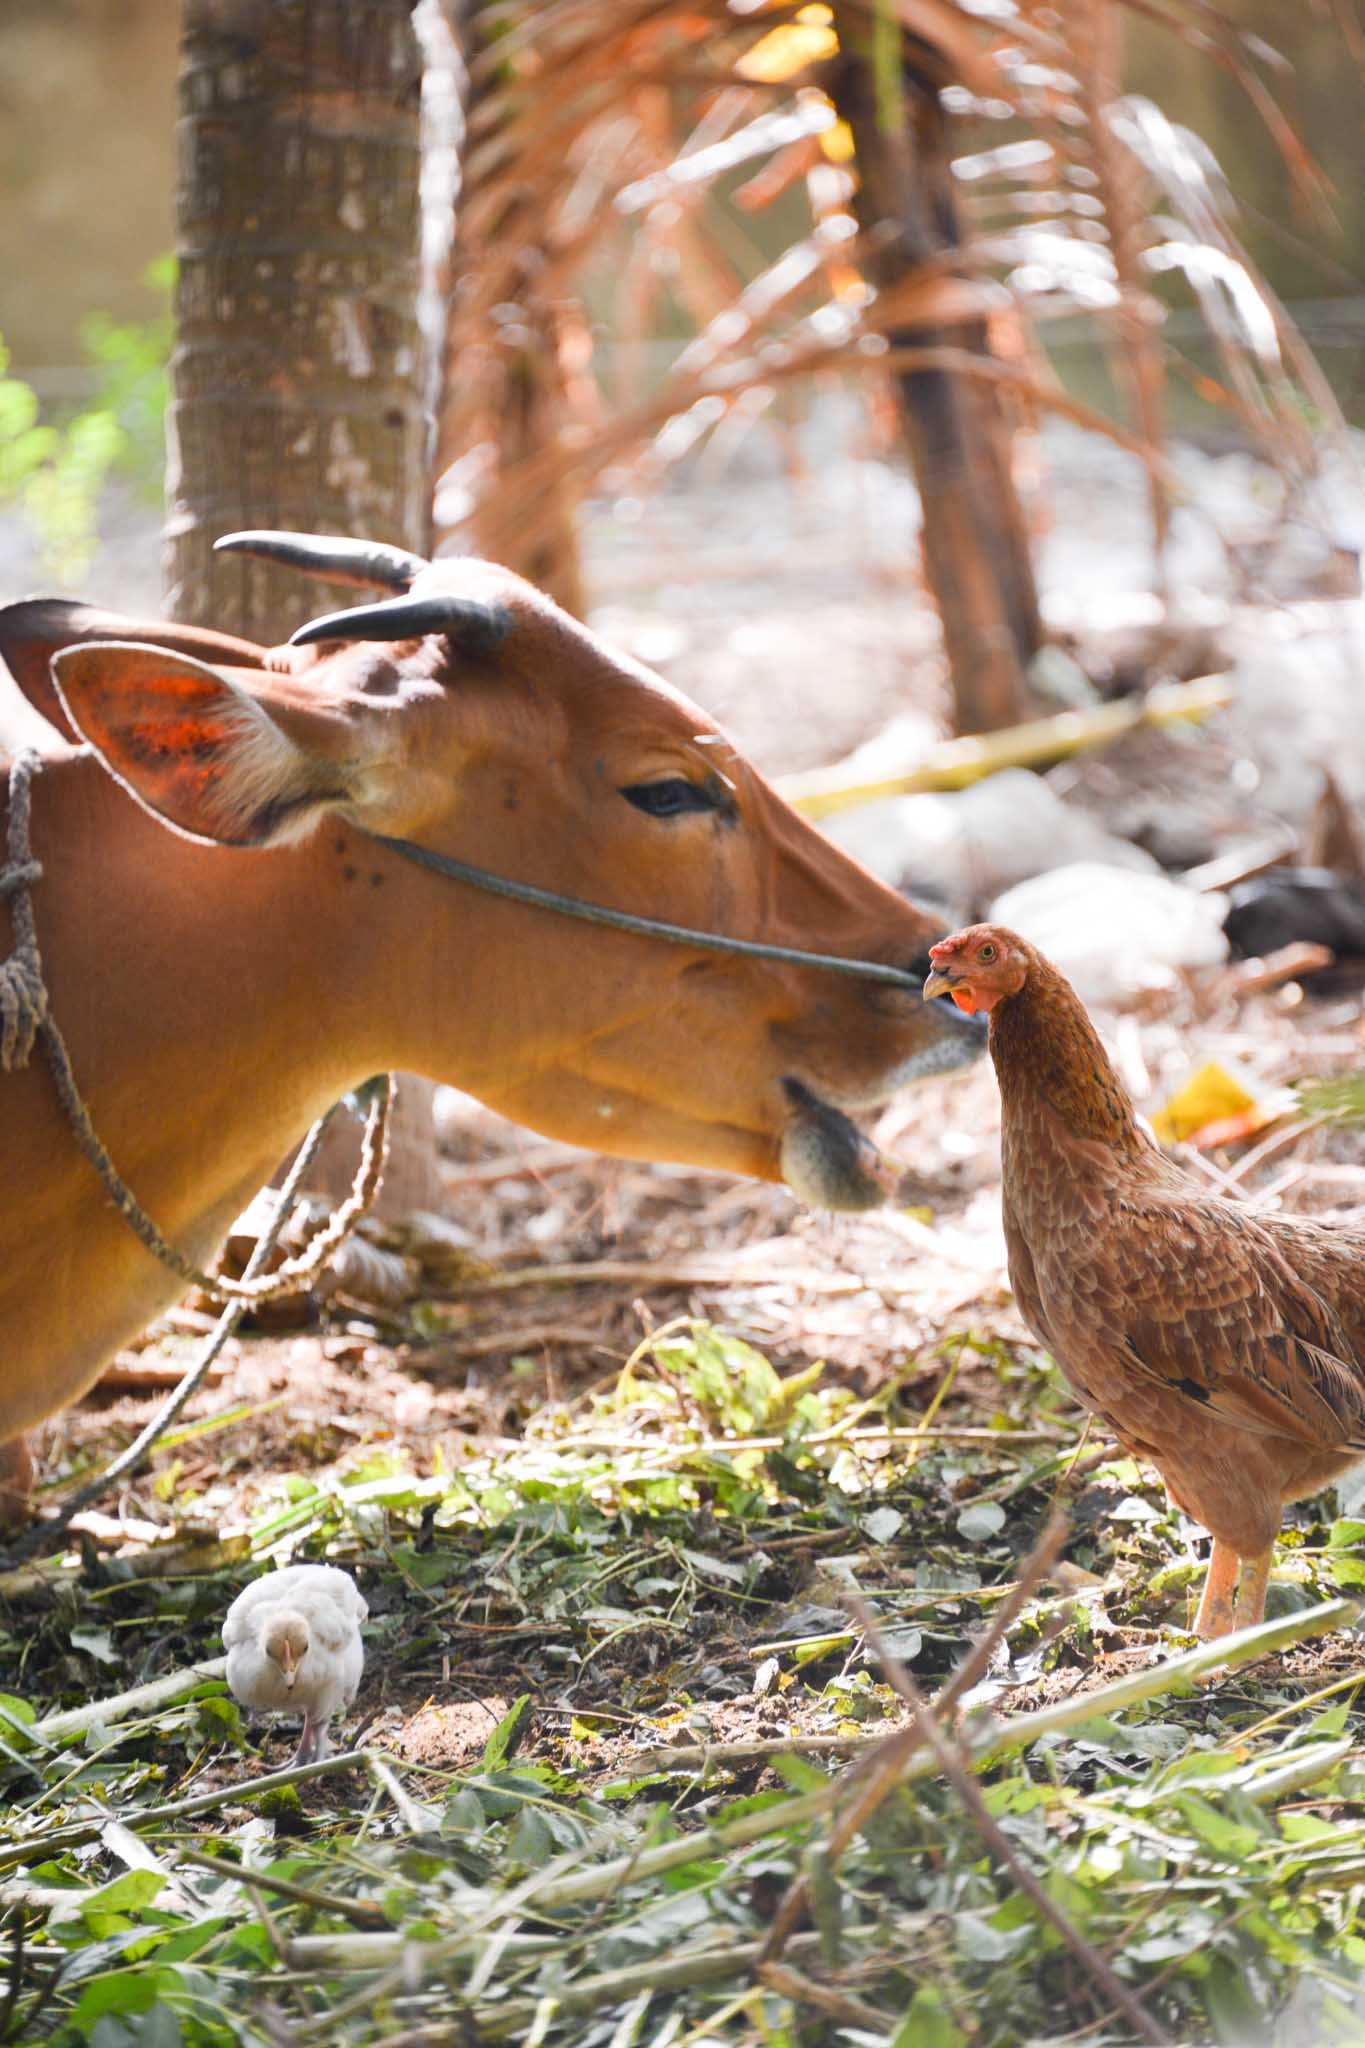 NusaLembongan cow and chicken